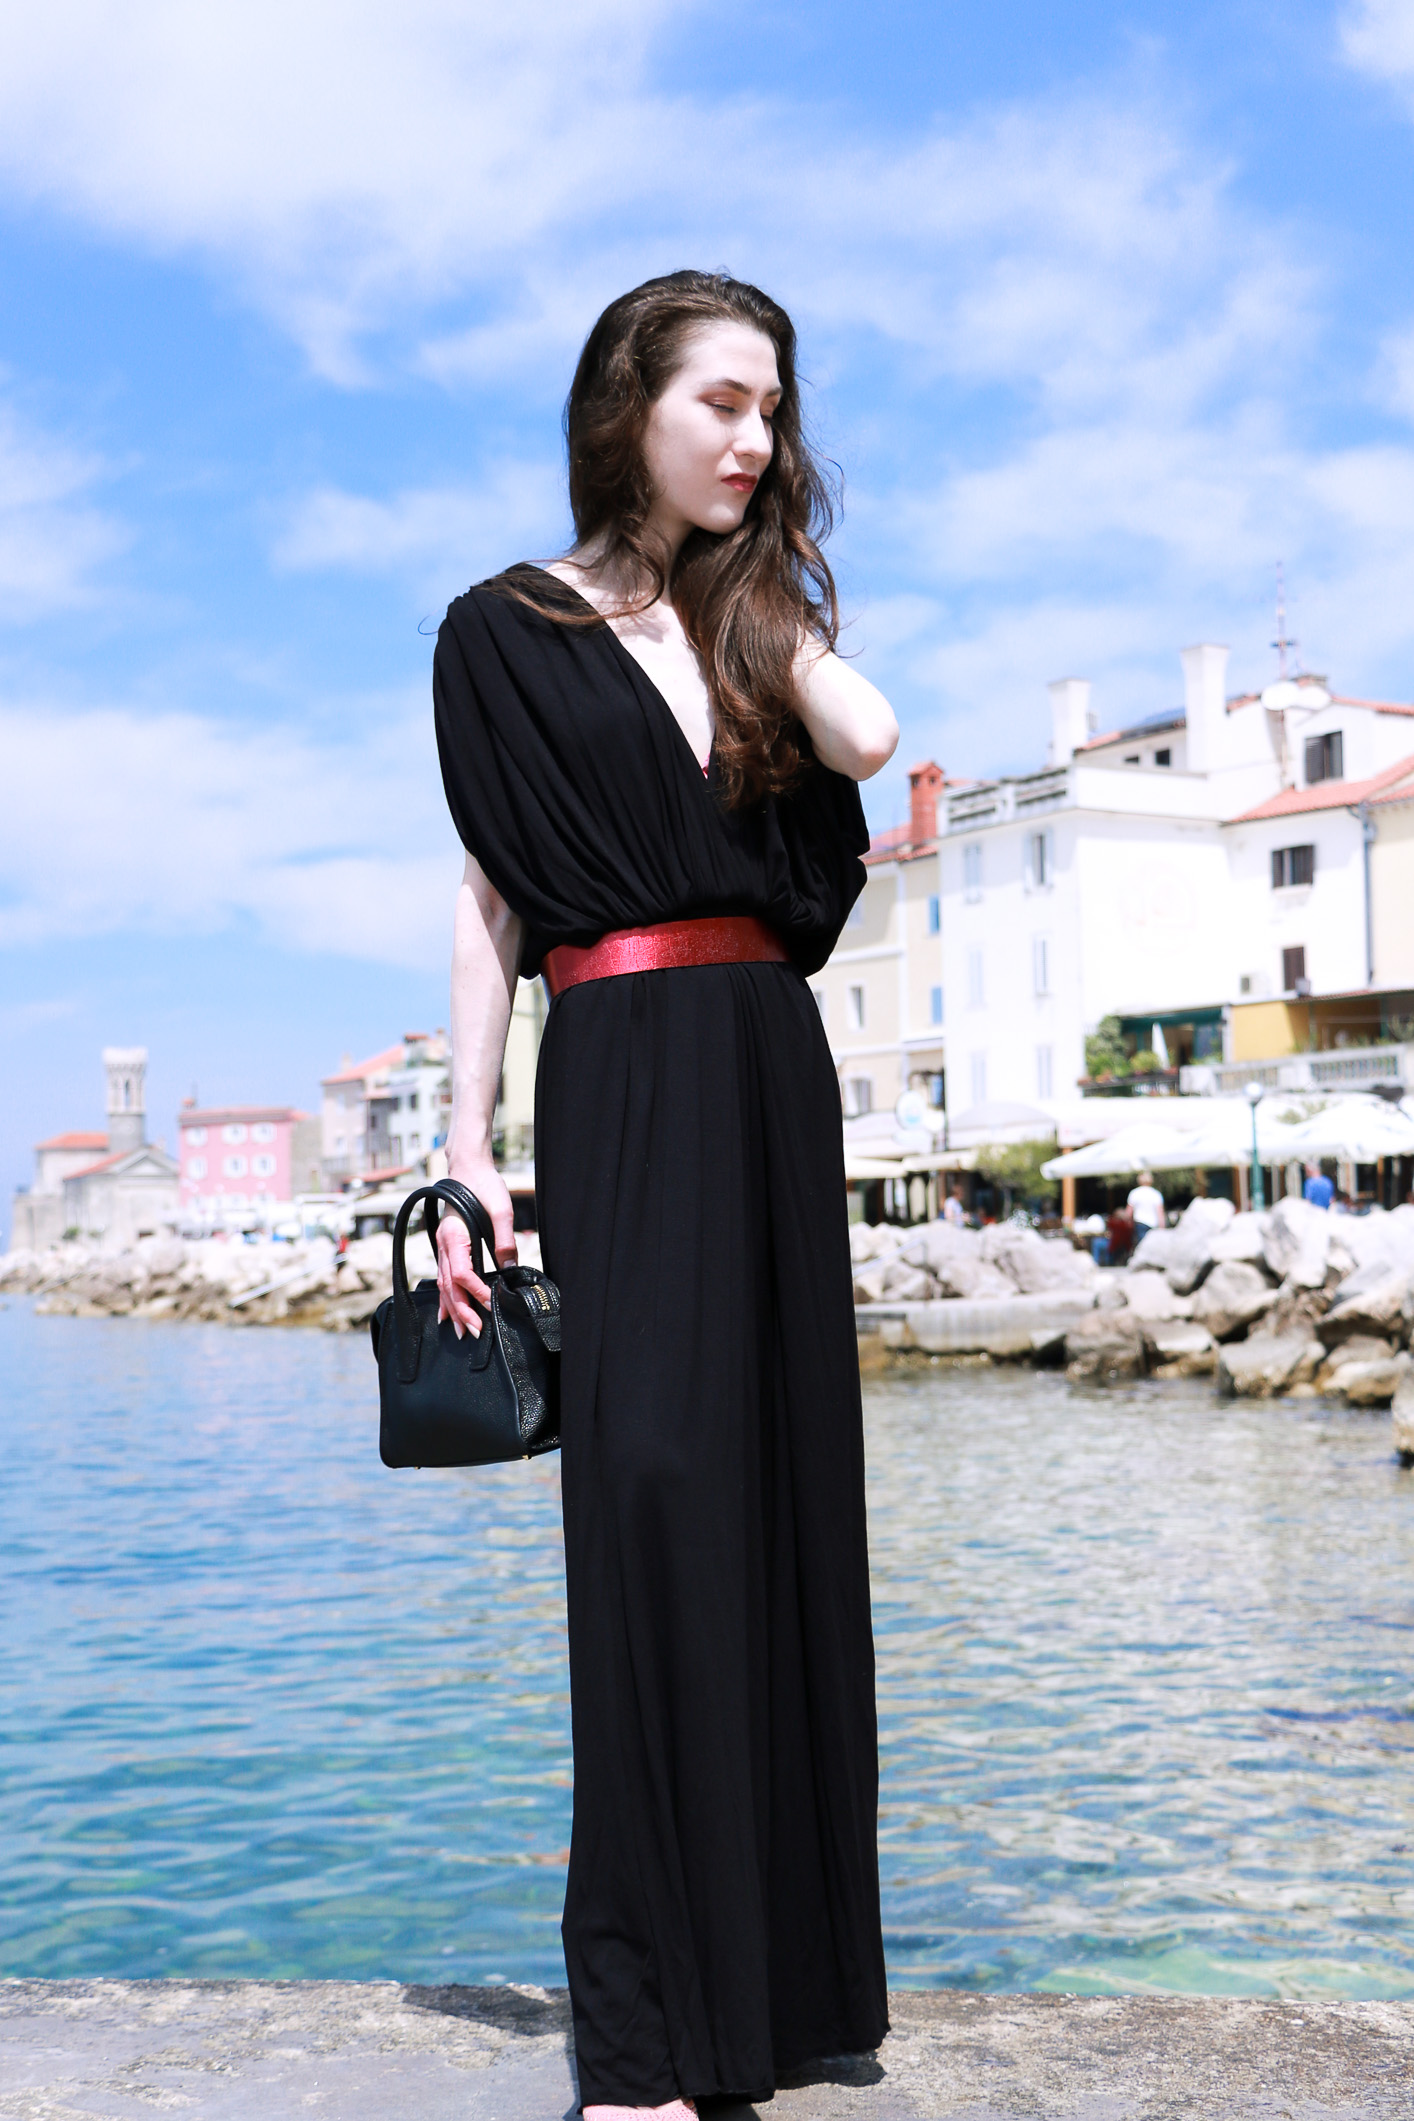 Fashion blogger Veronika Lipar of Brunette From Wall Street on what to wear to Cannes Film Festival